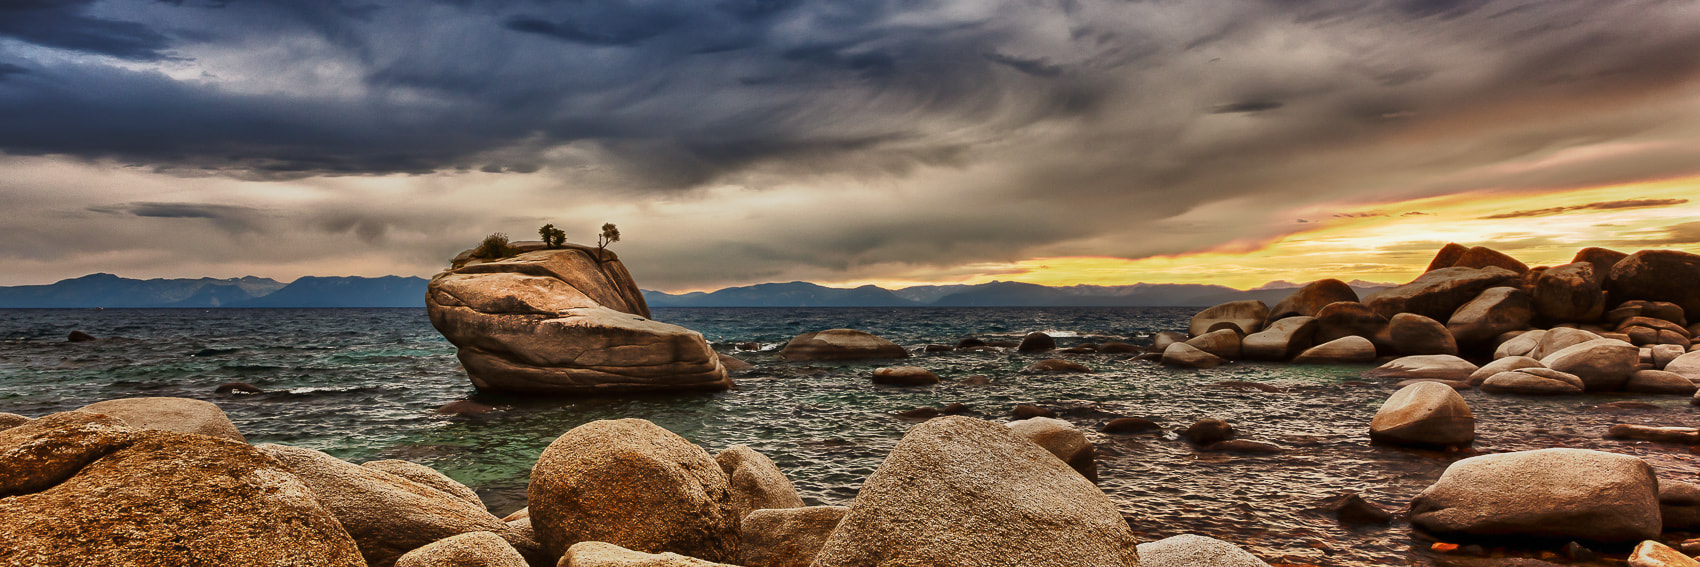 Photograph Sunset over Bonsai Rock by Mike Wiacek on 500px